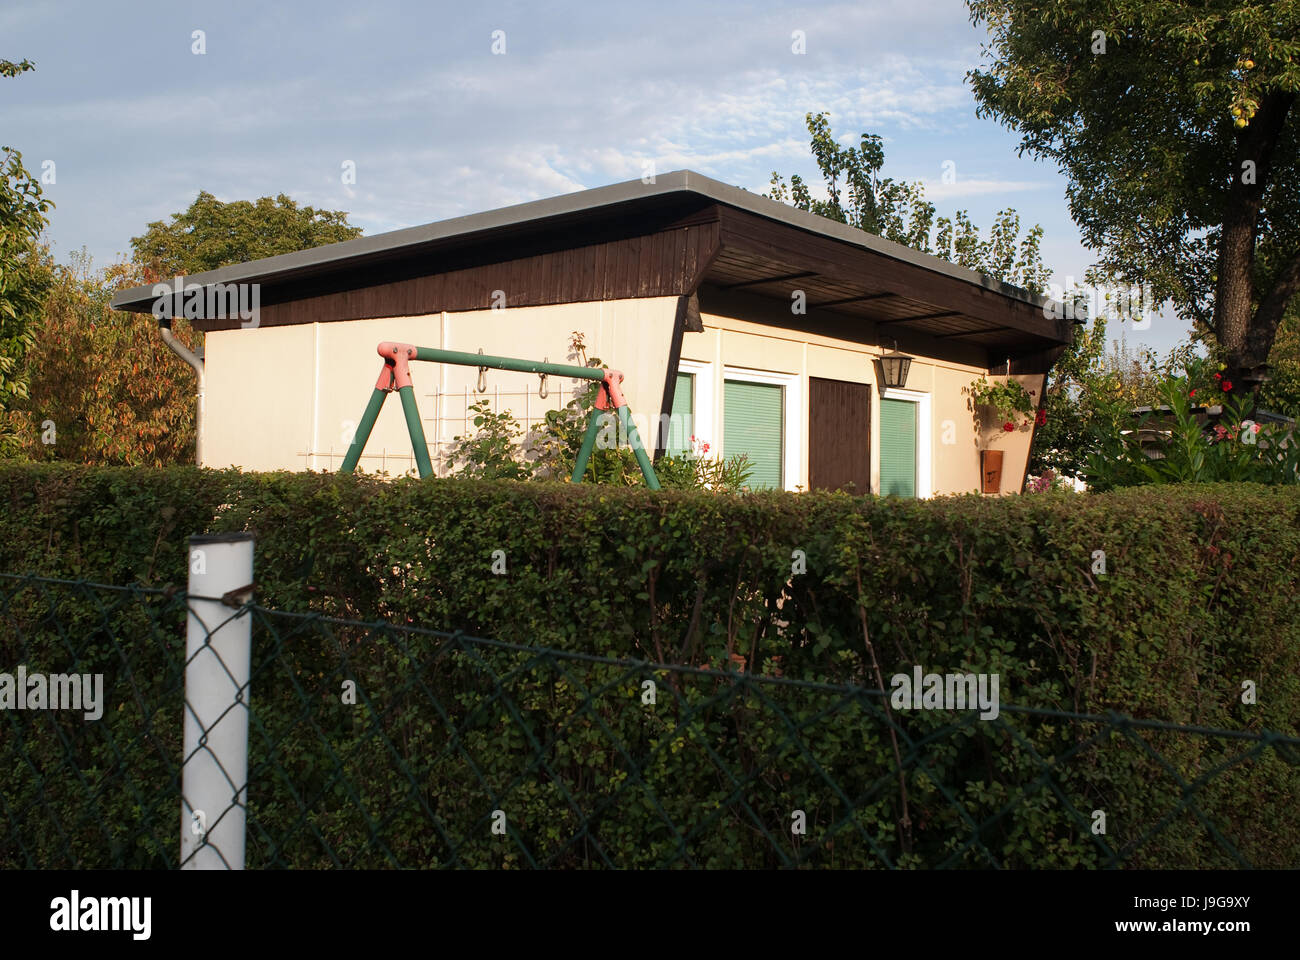 Allotment garden in Berlin. Often called Schrebergarten (German) or simply an allotment, or a community garden. - Stock Image